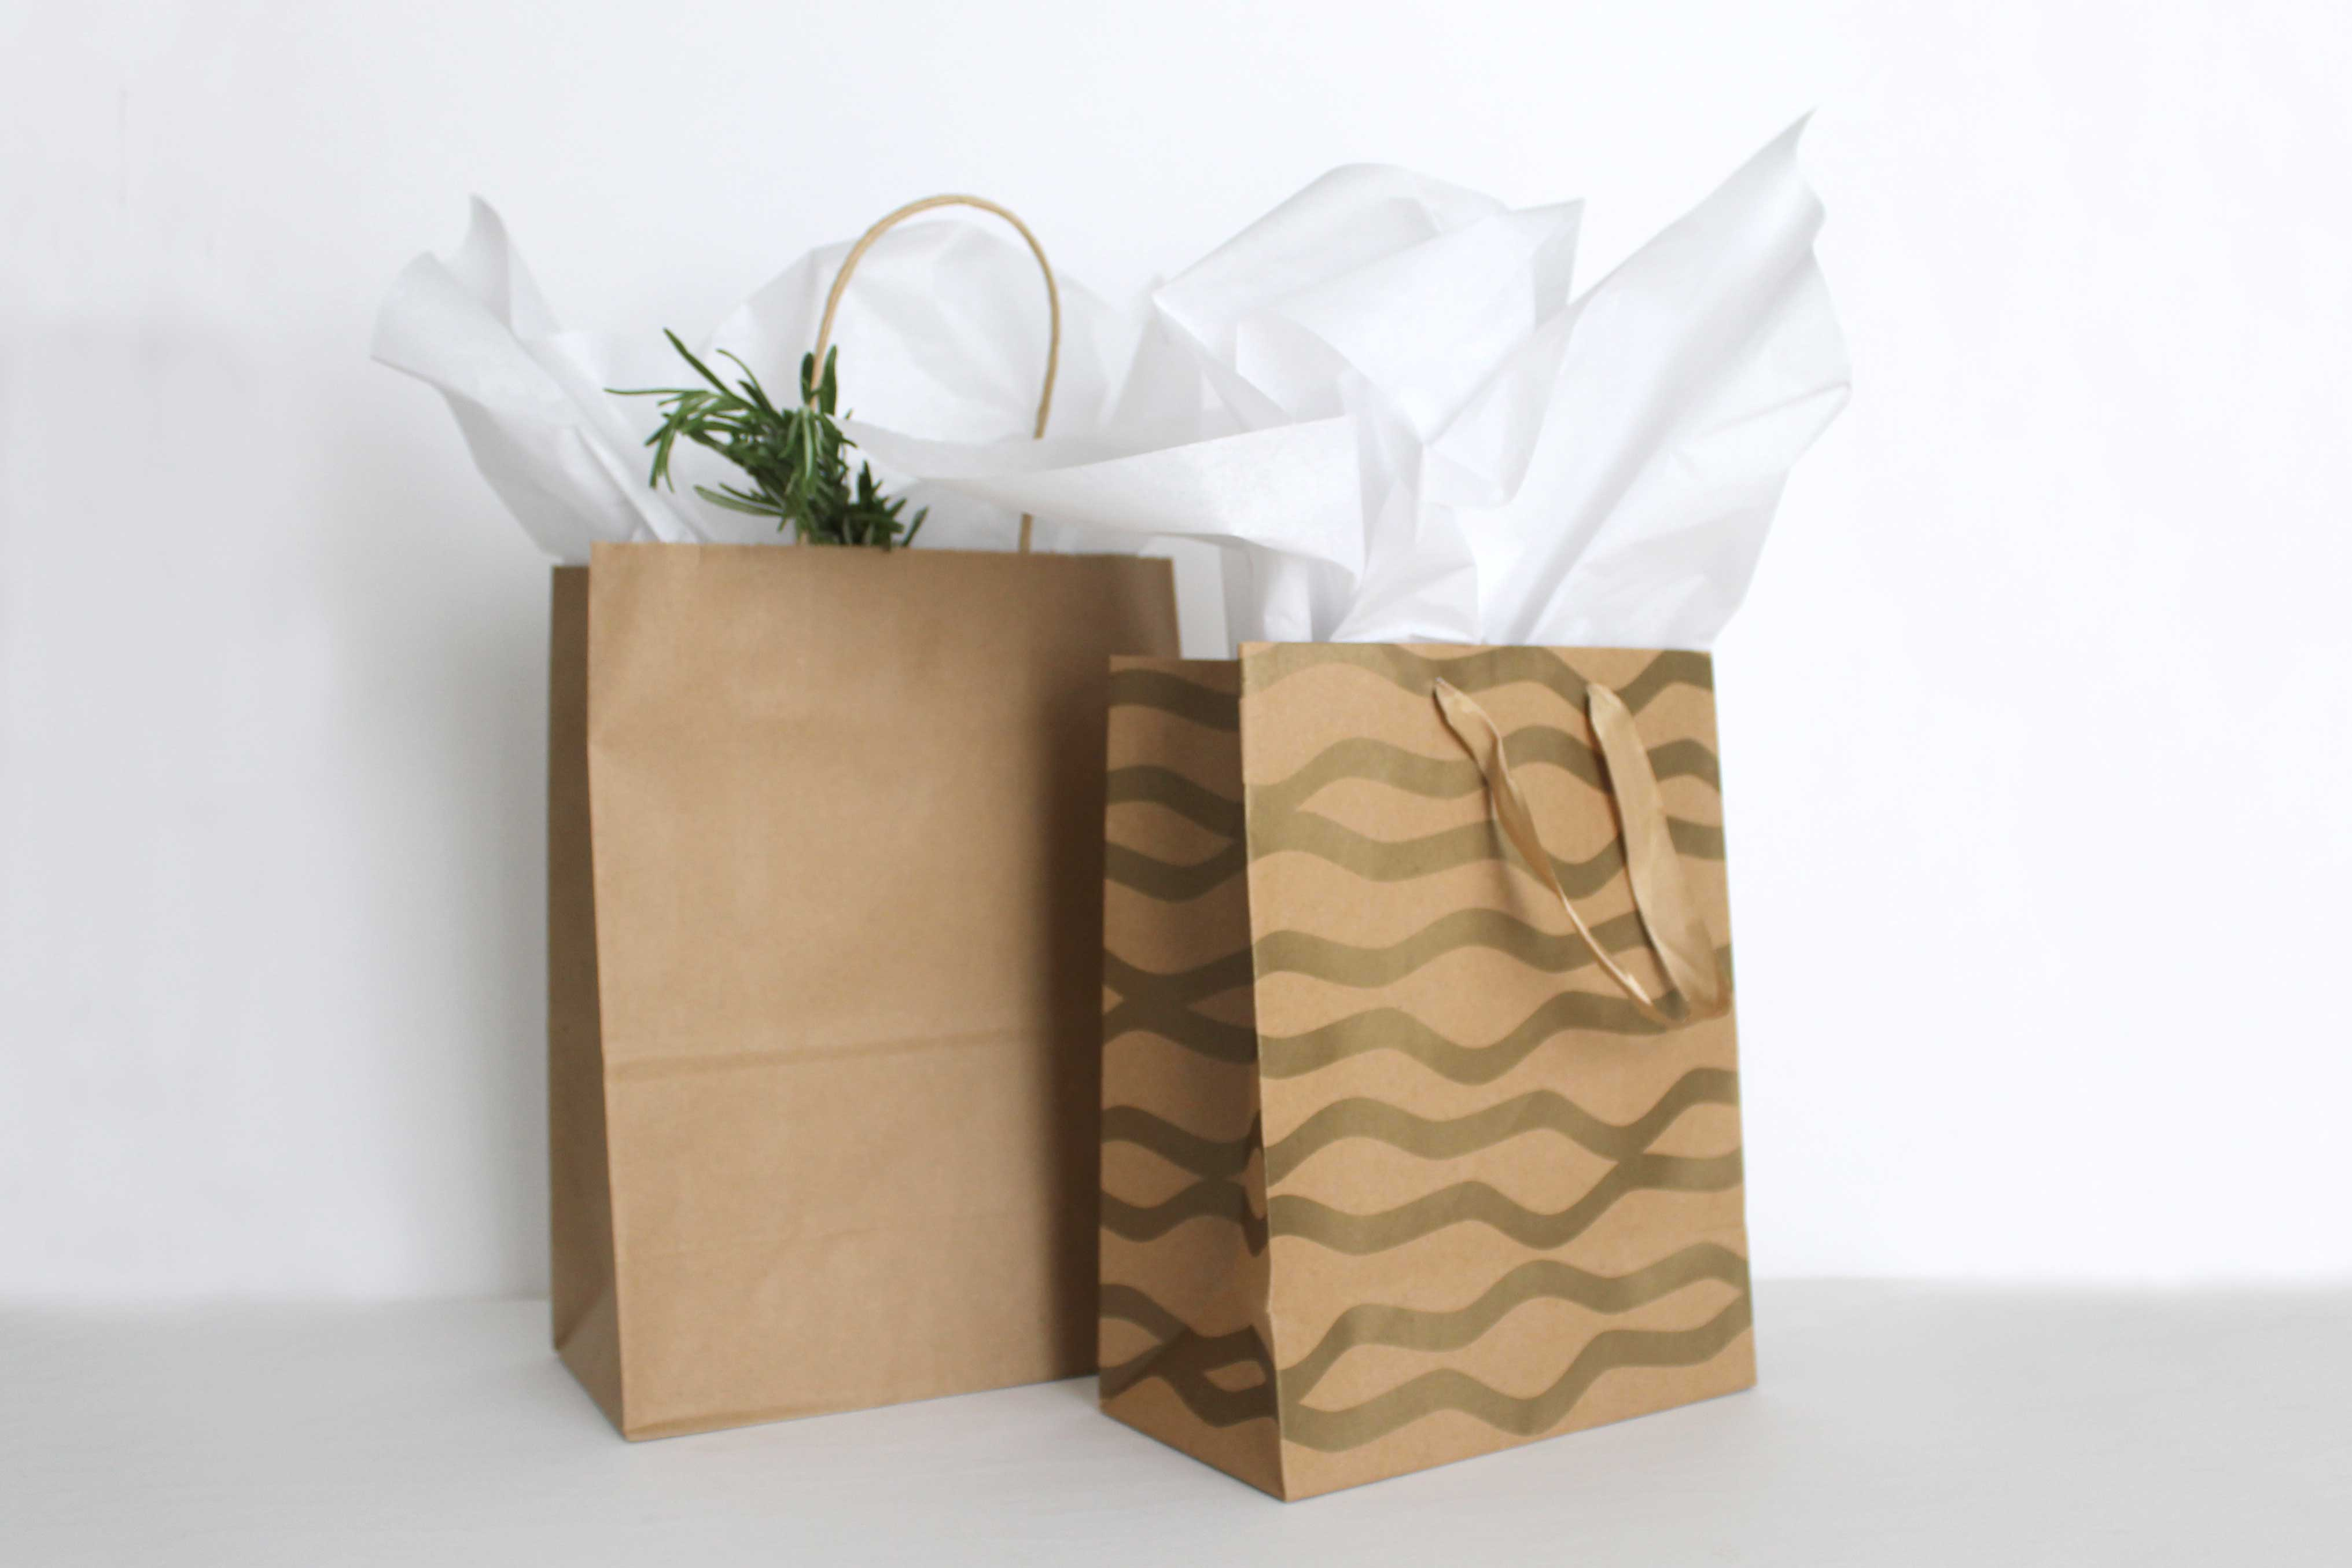 Sustainable gift guide - eco friendly gifts for everyone on your list!